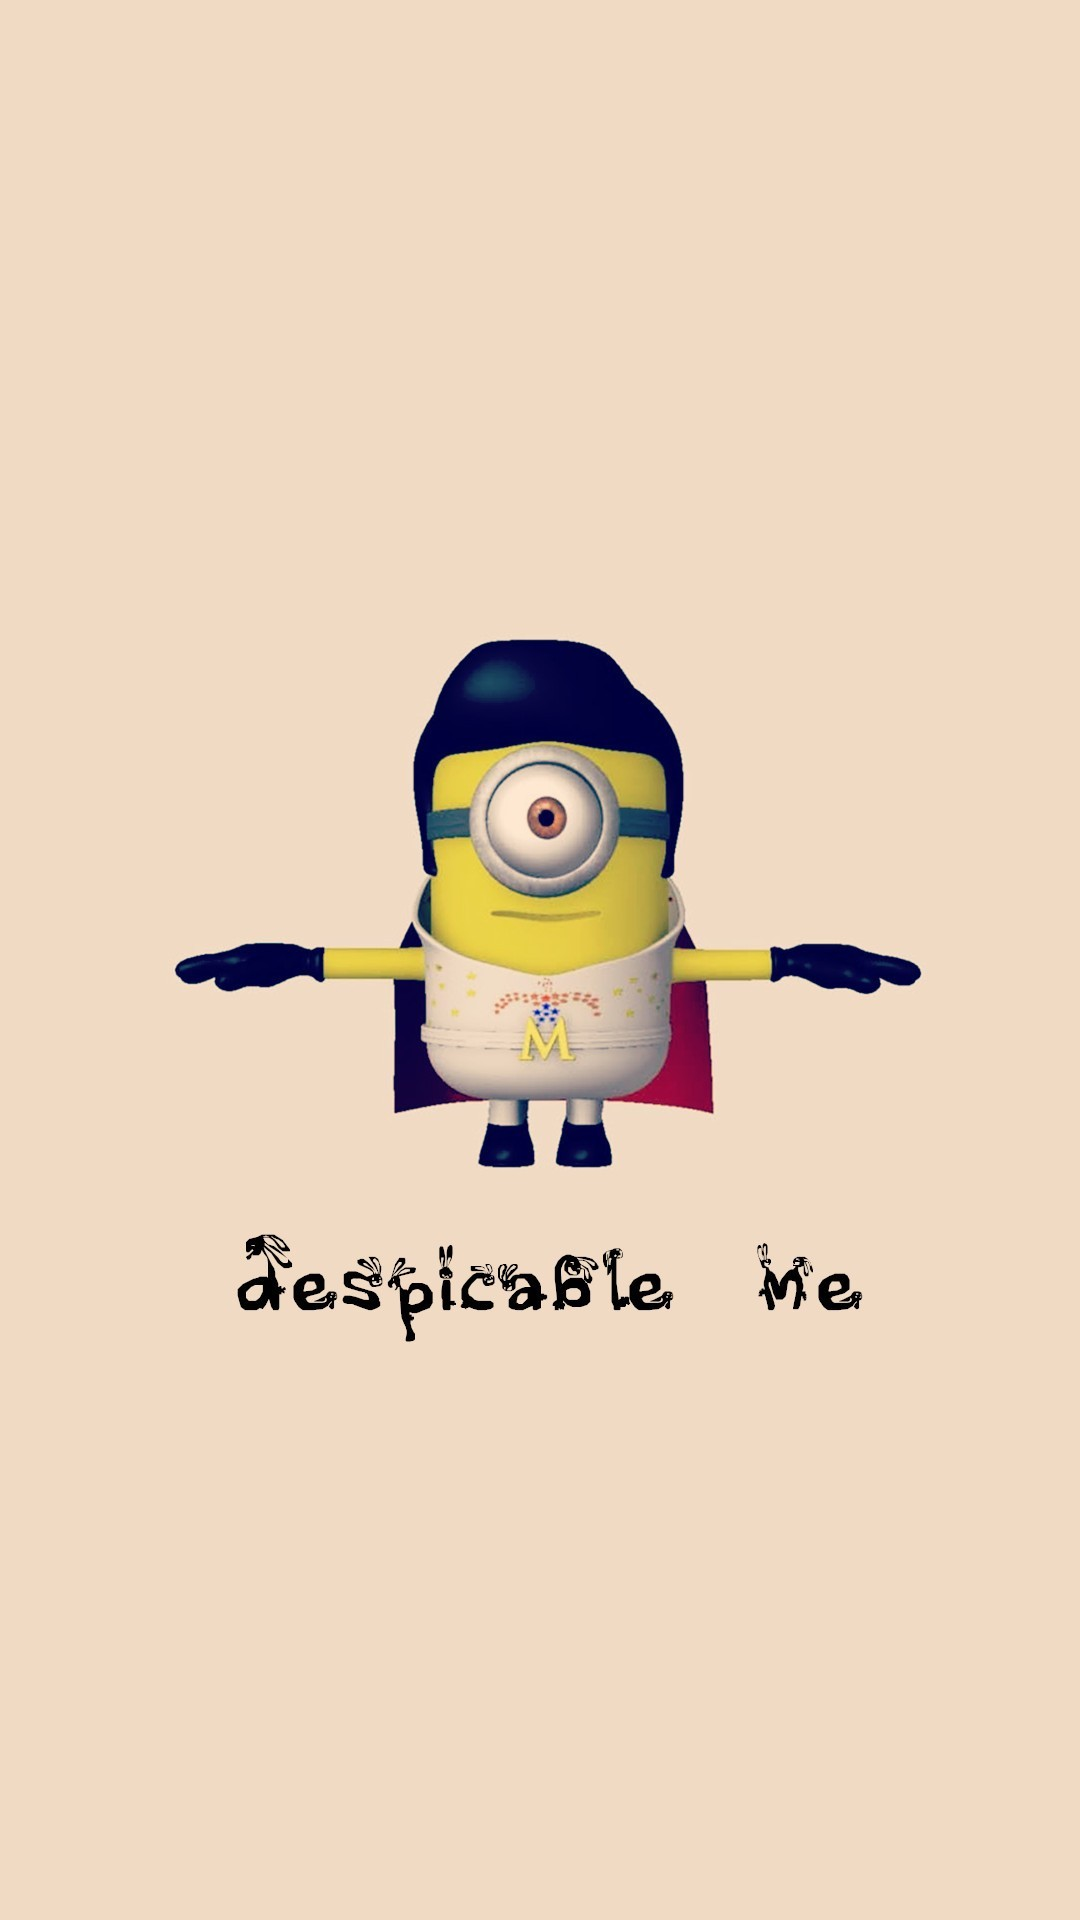 1080x1920 Elvis Presley minion apple iphone 6 plus wallpaper HD - Despicable Me, 2014  Halloween #